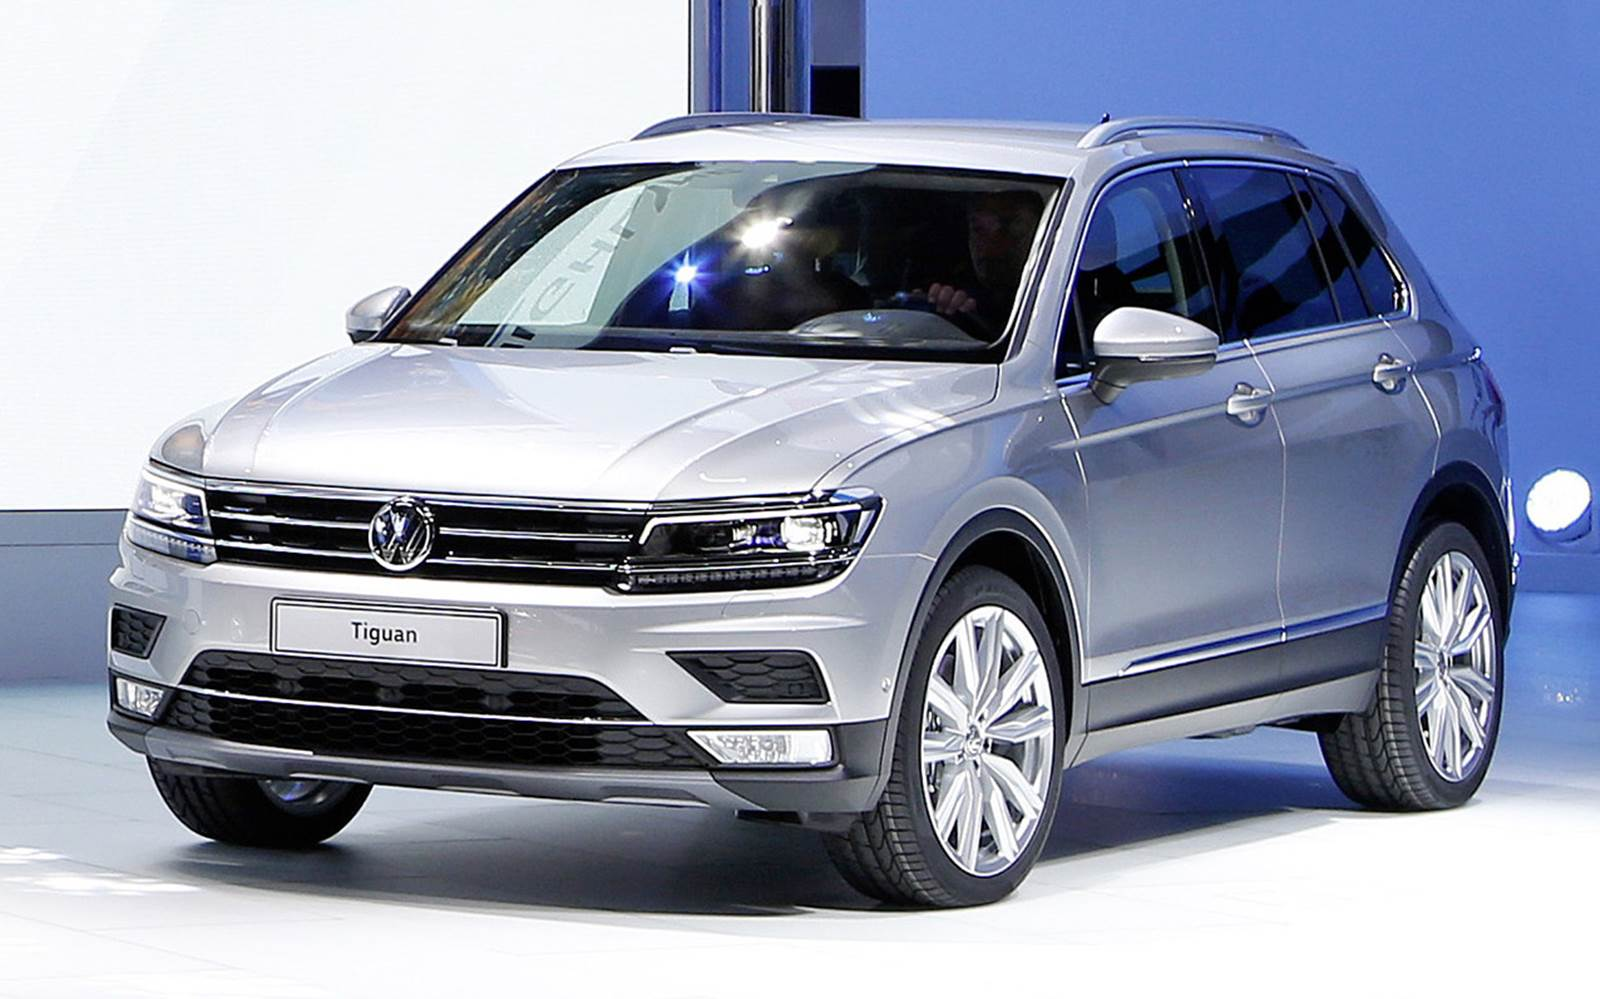 vw tiguan 2016 v deo com detalhes externos e internos car blog br. Black Bedroom Furniture Sets. Home Design Ideas